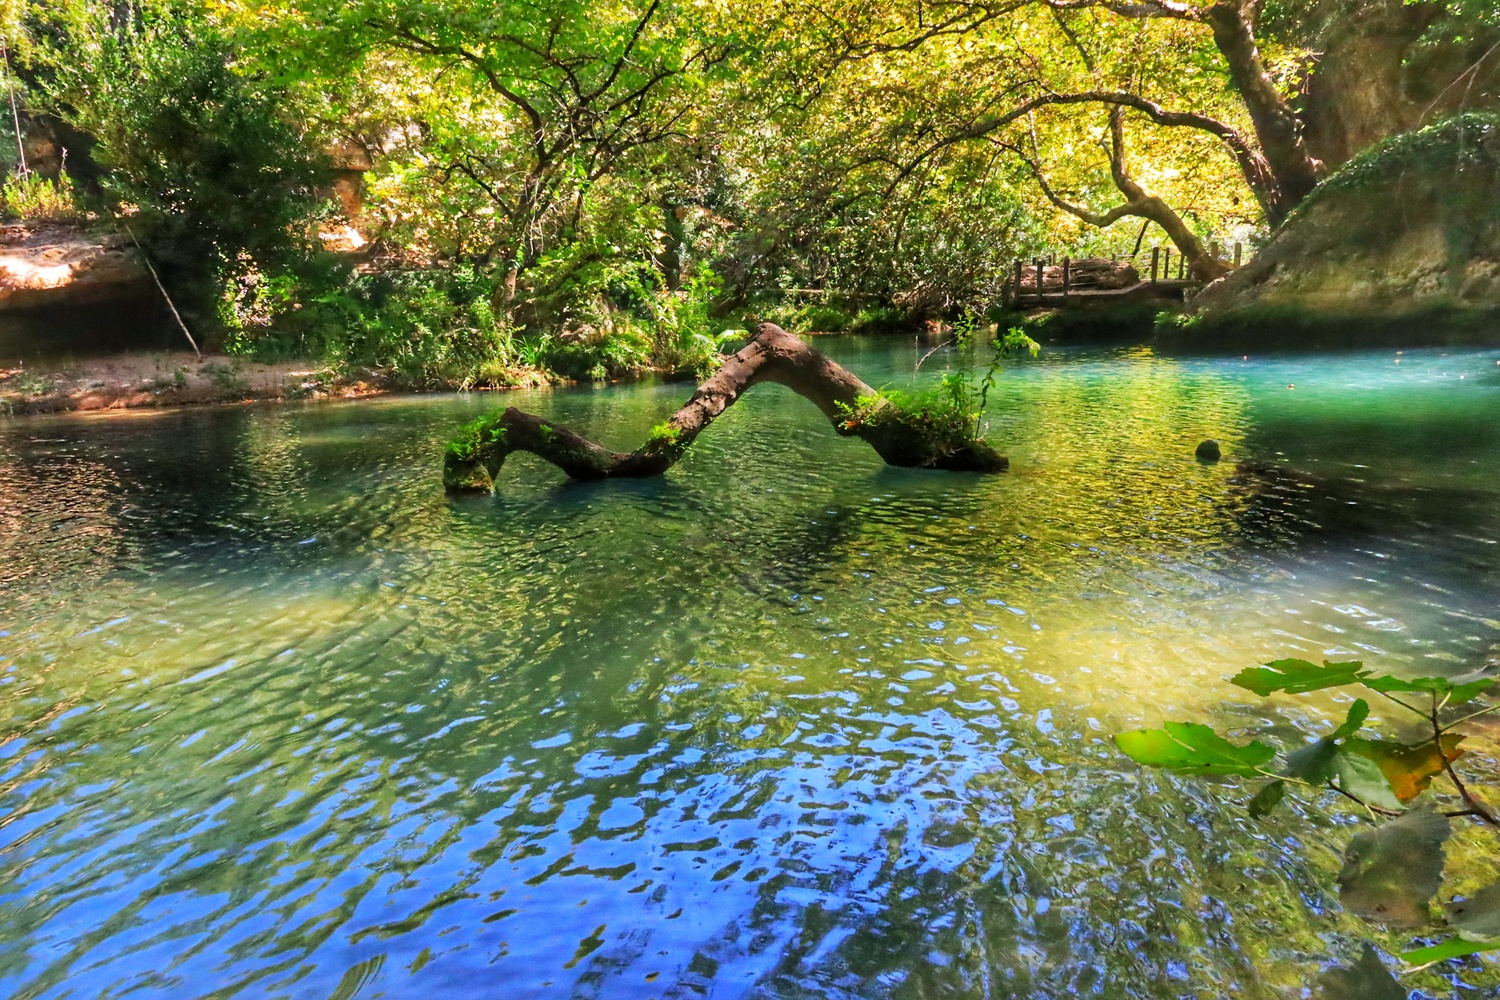 tree in the middle of the river by İsmail Alper Şenova